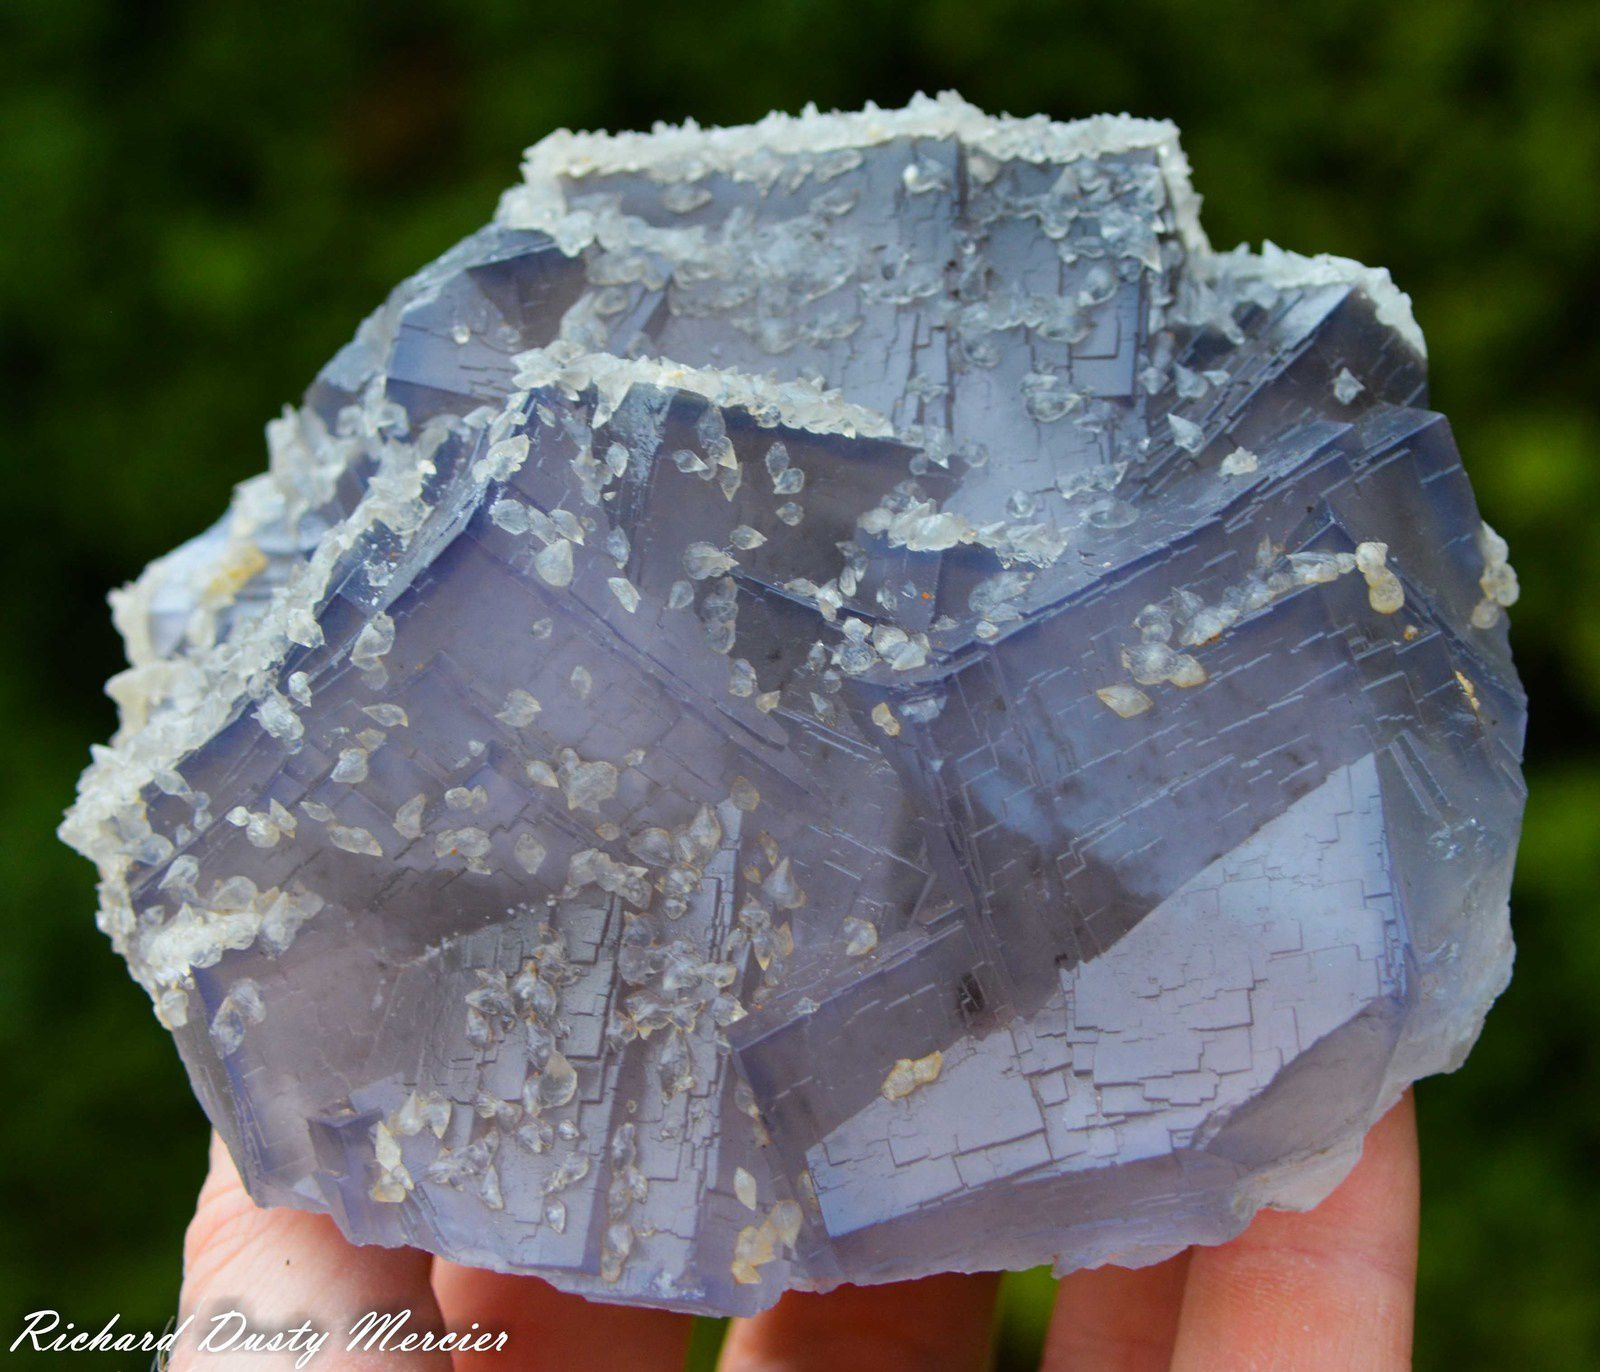 Fluorite from Ghuwai Mine, Loralai District, Balochistan, Pakistan